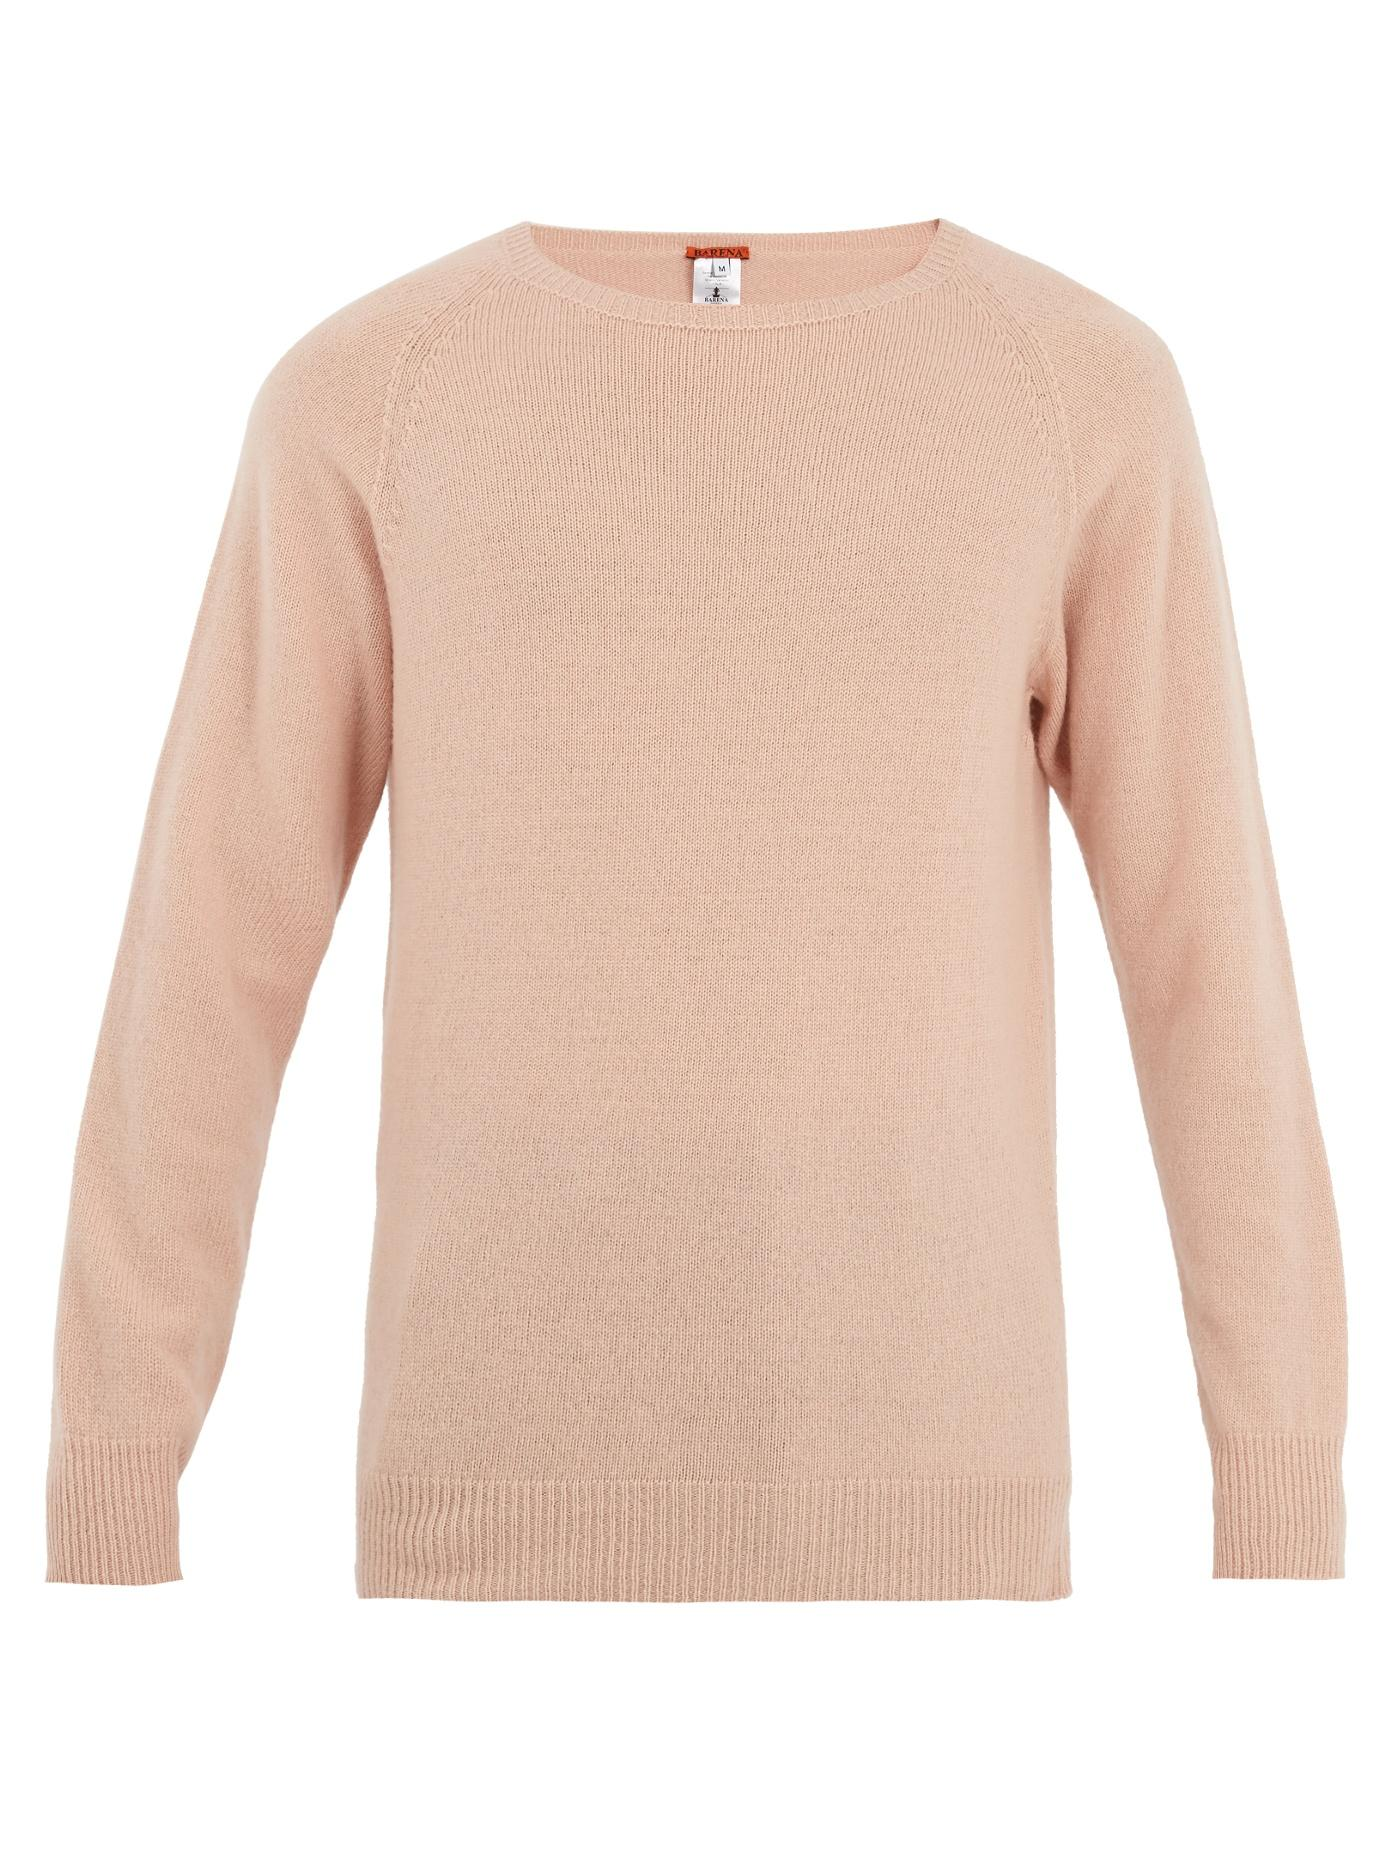 Barena Venezia Long-Sleeved Wool And Cashmere-Blend Sweater In Pink